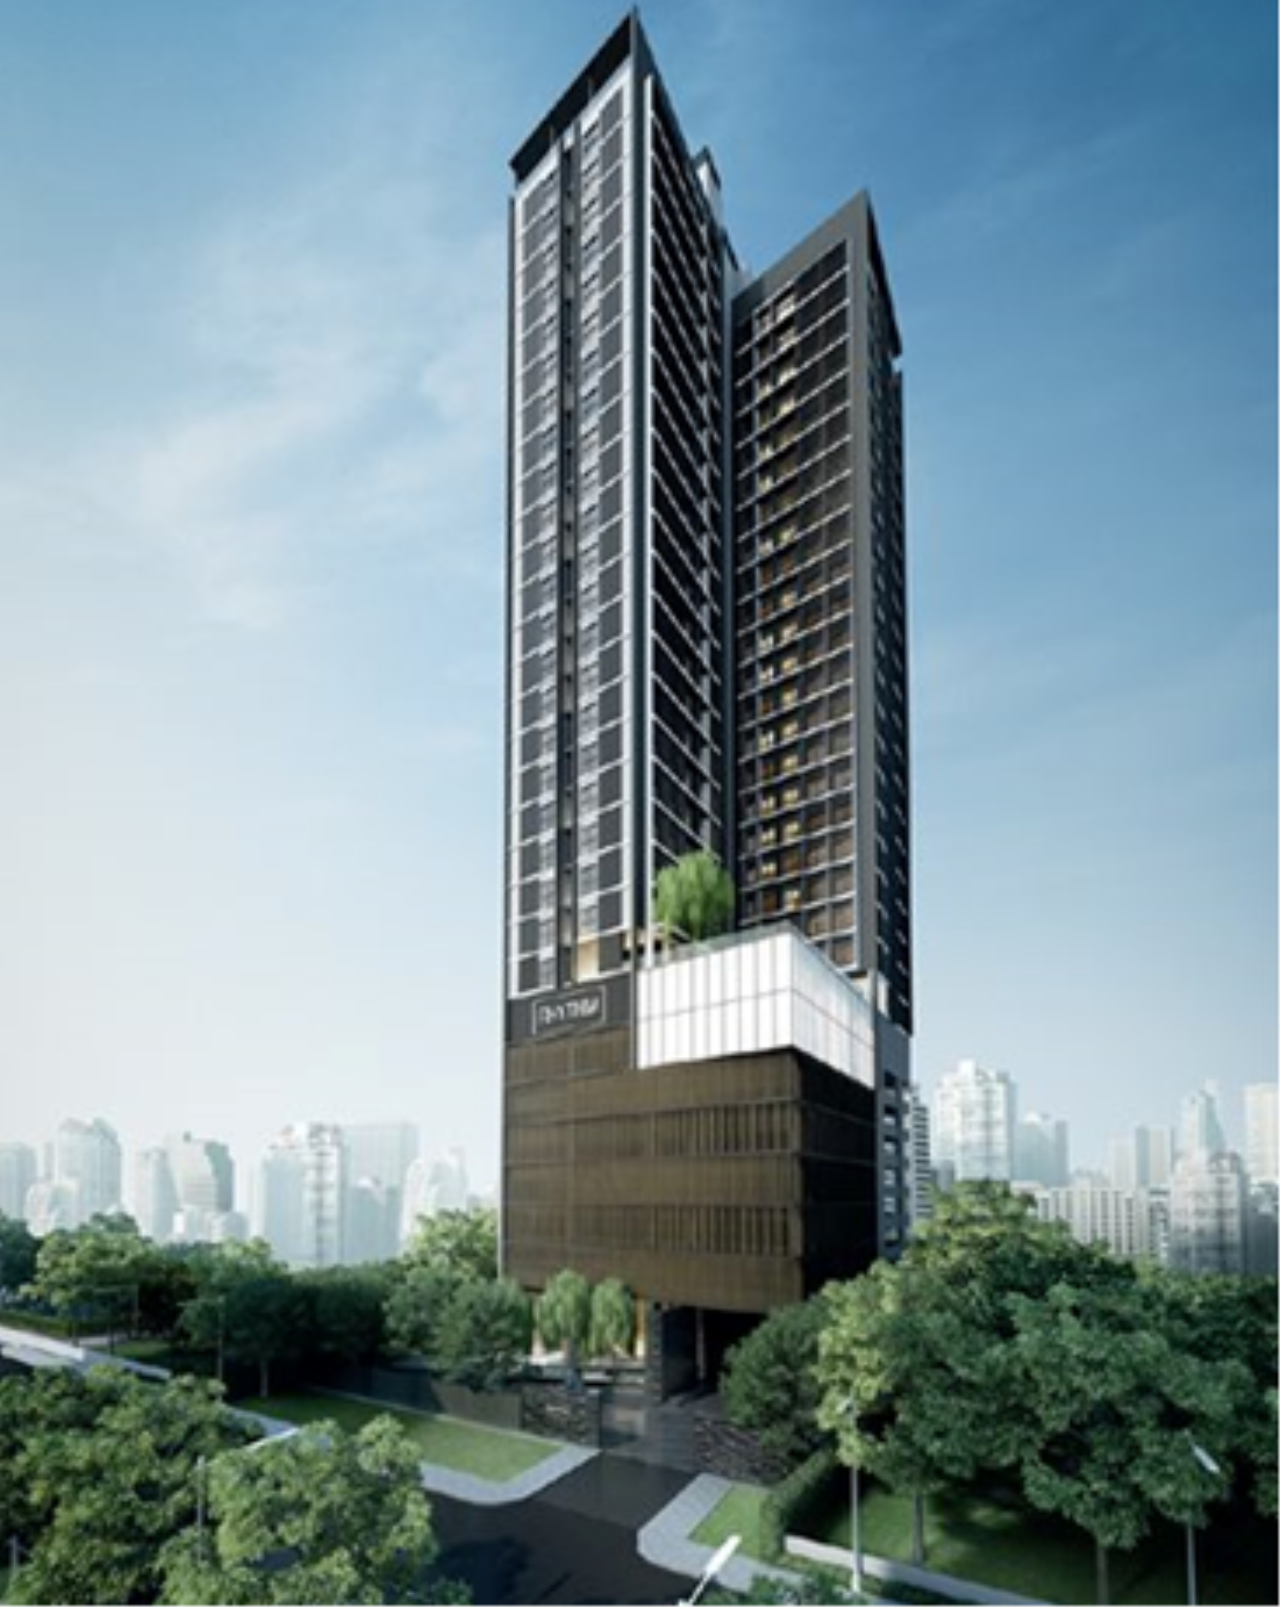 RE/MAX CondoDee Agency's Top Floor Condo @ Asoke - Rama 9 UNDER Market - HOT Deal! 3